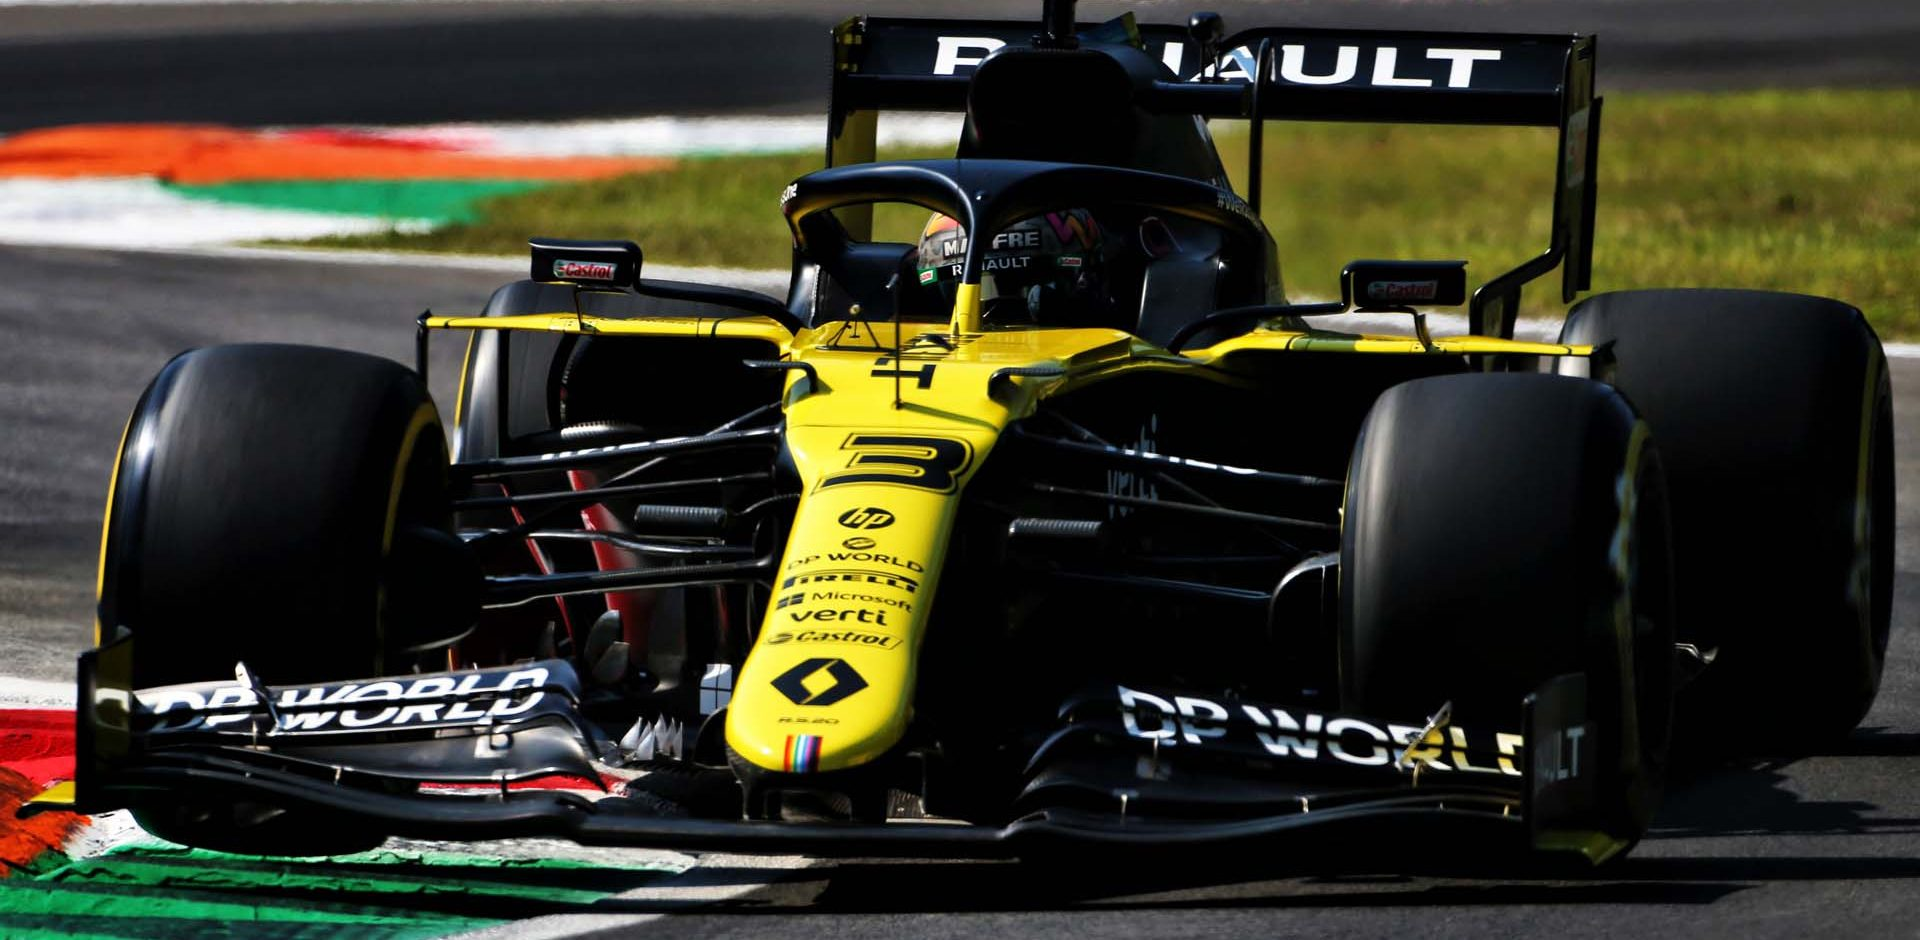 Daniel Ricciardo (AUS) Renault F1 Team RS20. Italian Grand Prix, Friday 4th September 2020. Monza Italy.